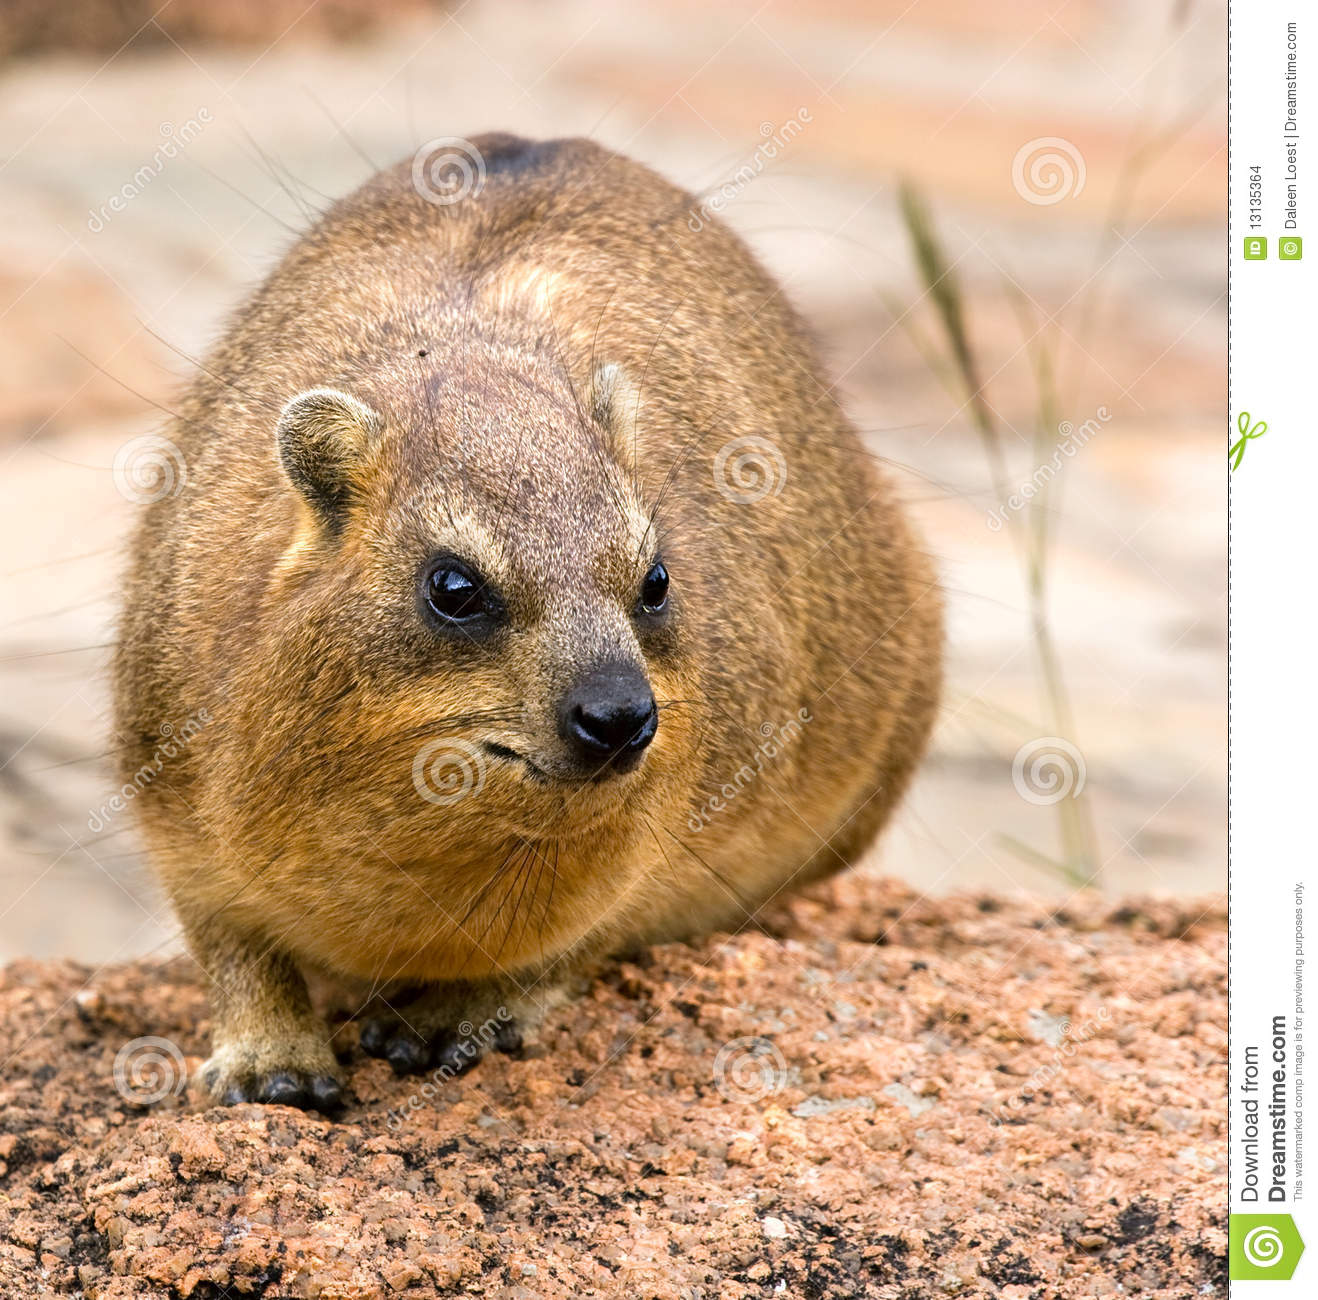 Rock Hyrax clipart #3, Download drawings